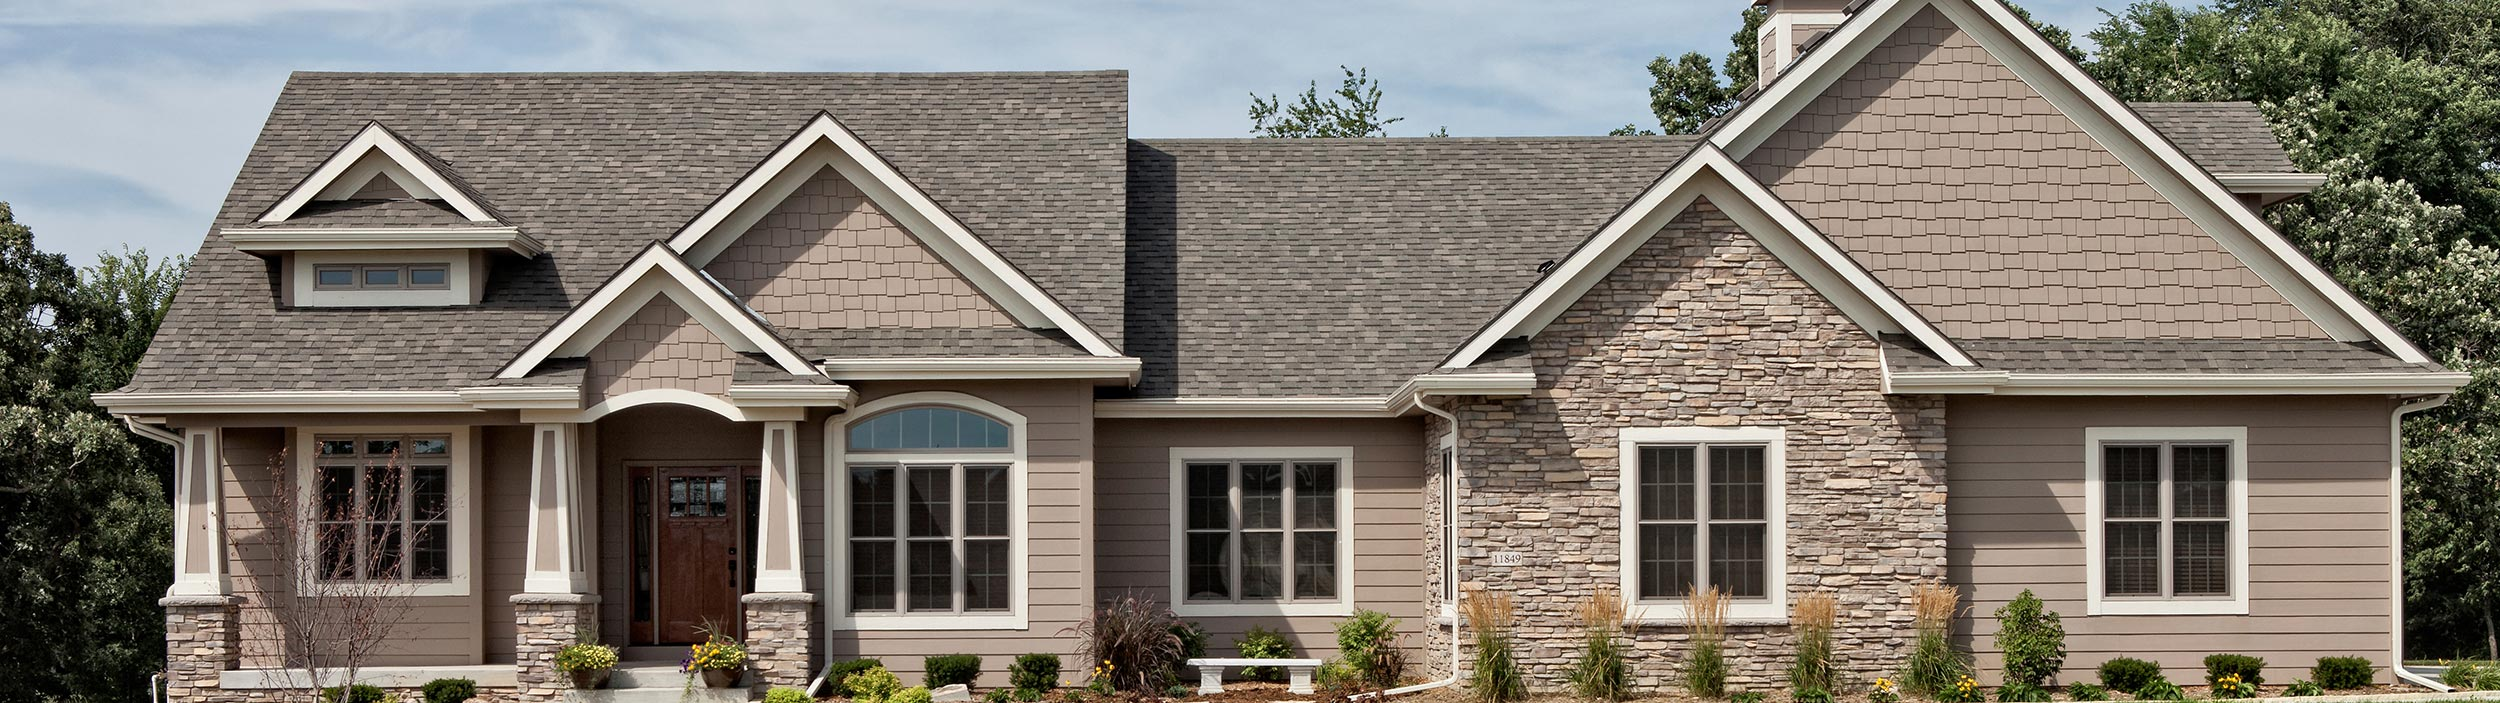 Byers Construction Testimonials - Roofing and Siding